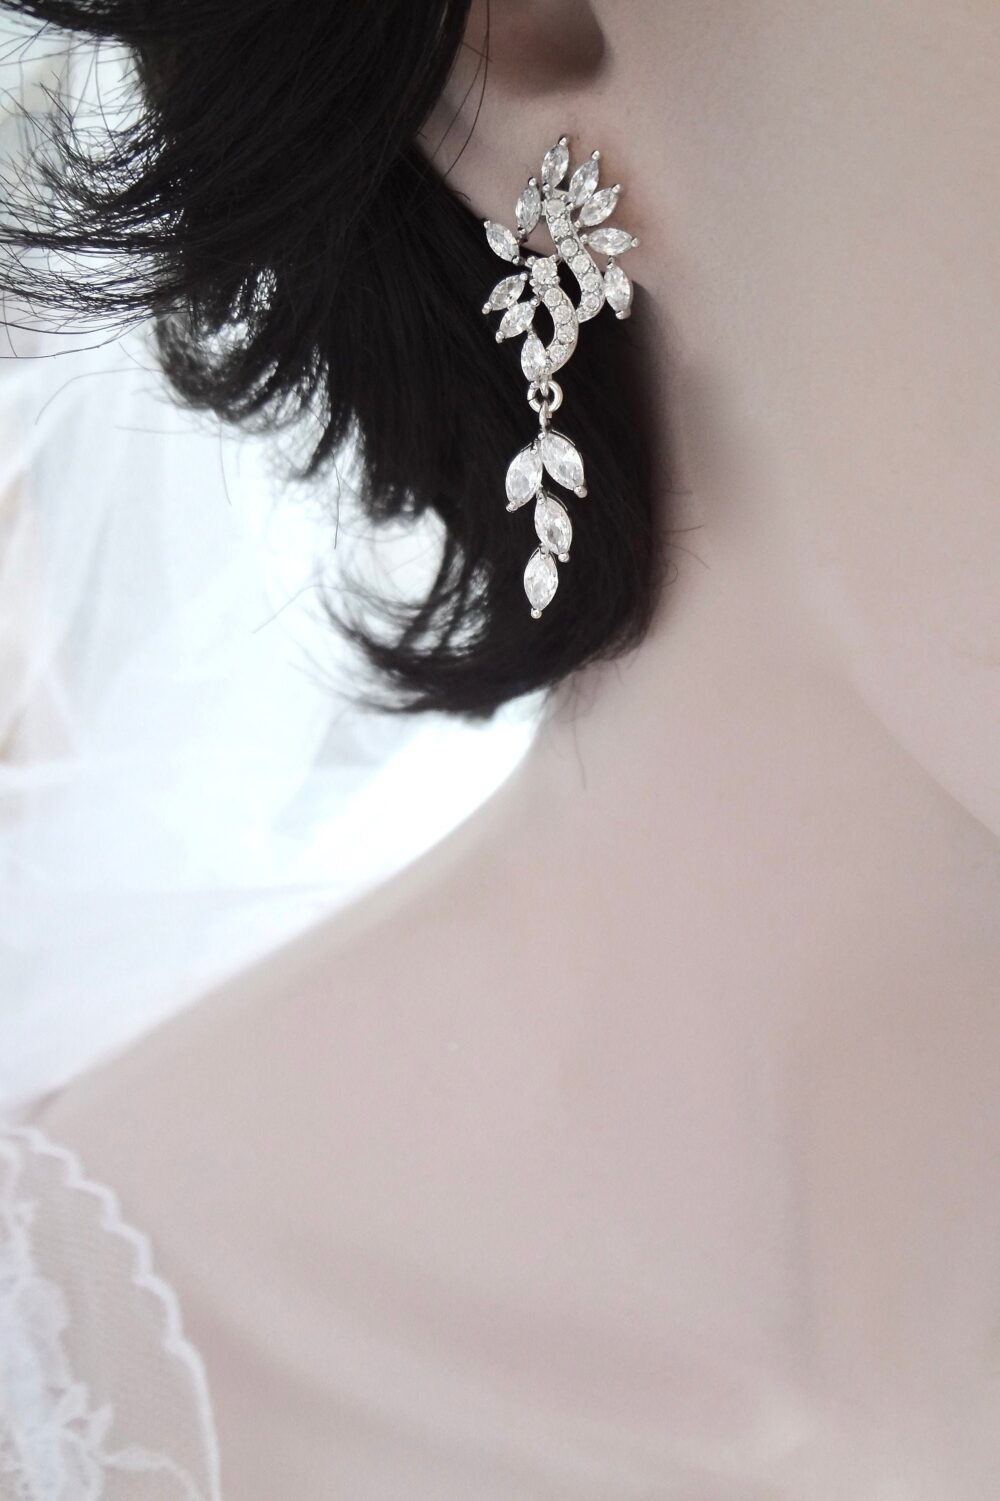 Wedding Earrings, Cz Dangle Leaf Vine Earrings For A Bride, Mother Of The Bridesmaids Jewelry Gift Her Wife. Lilly